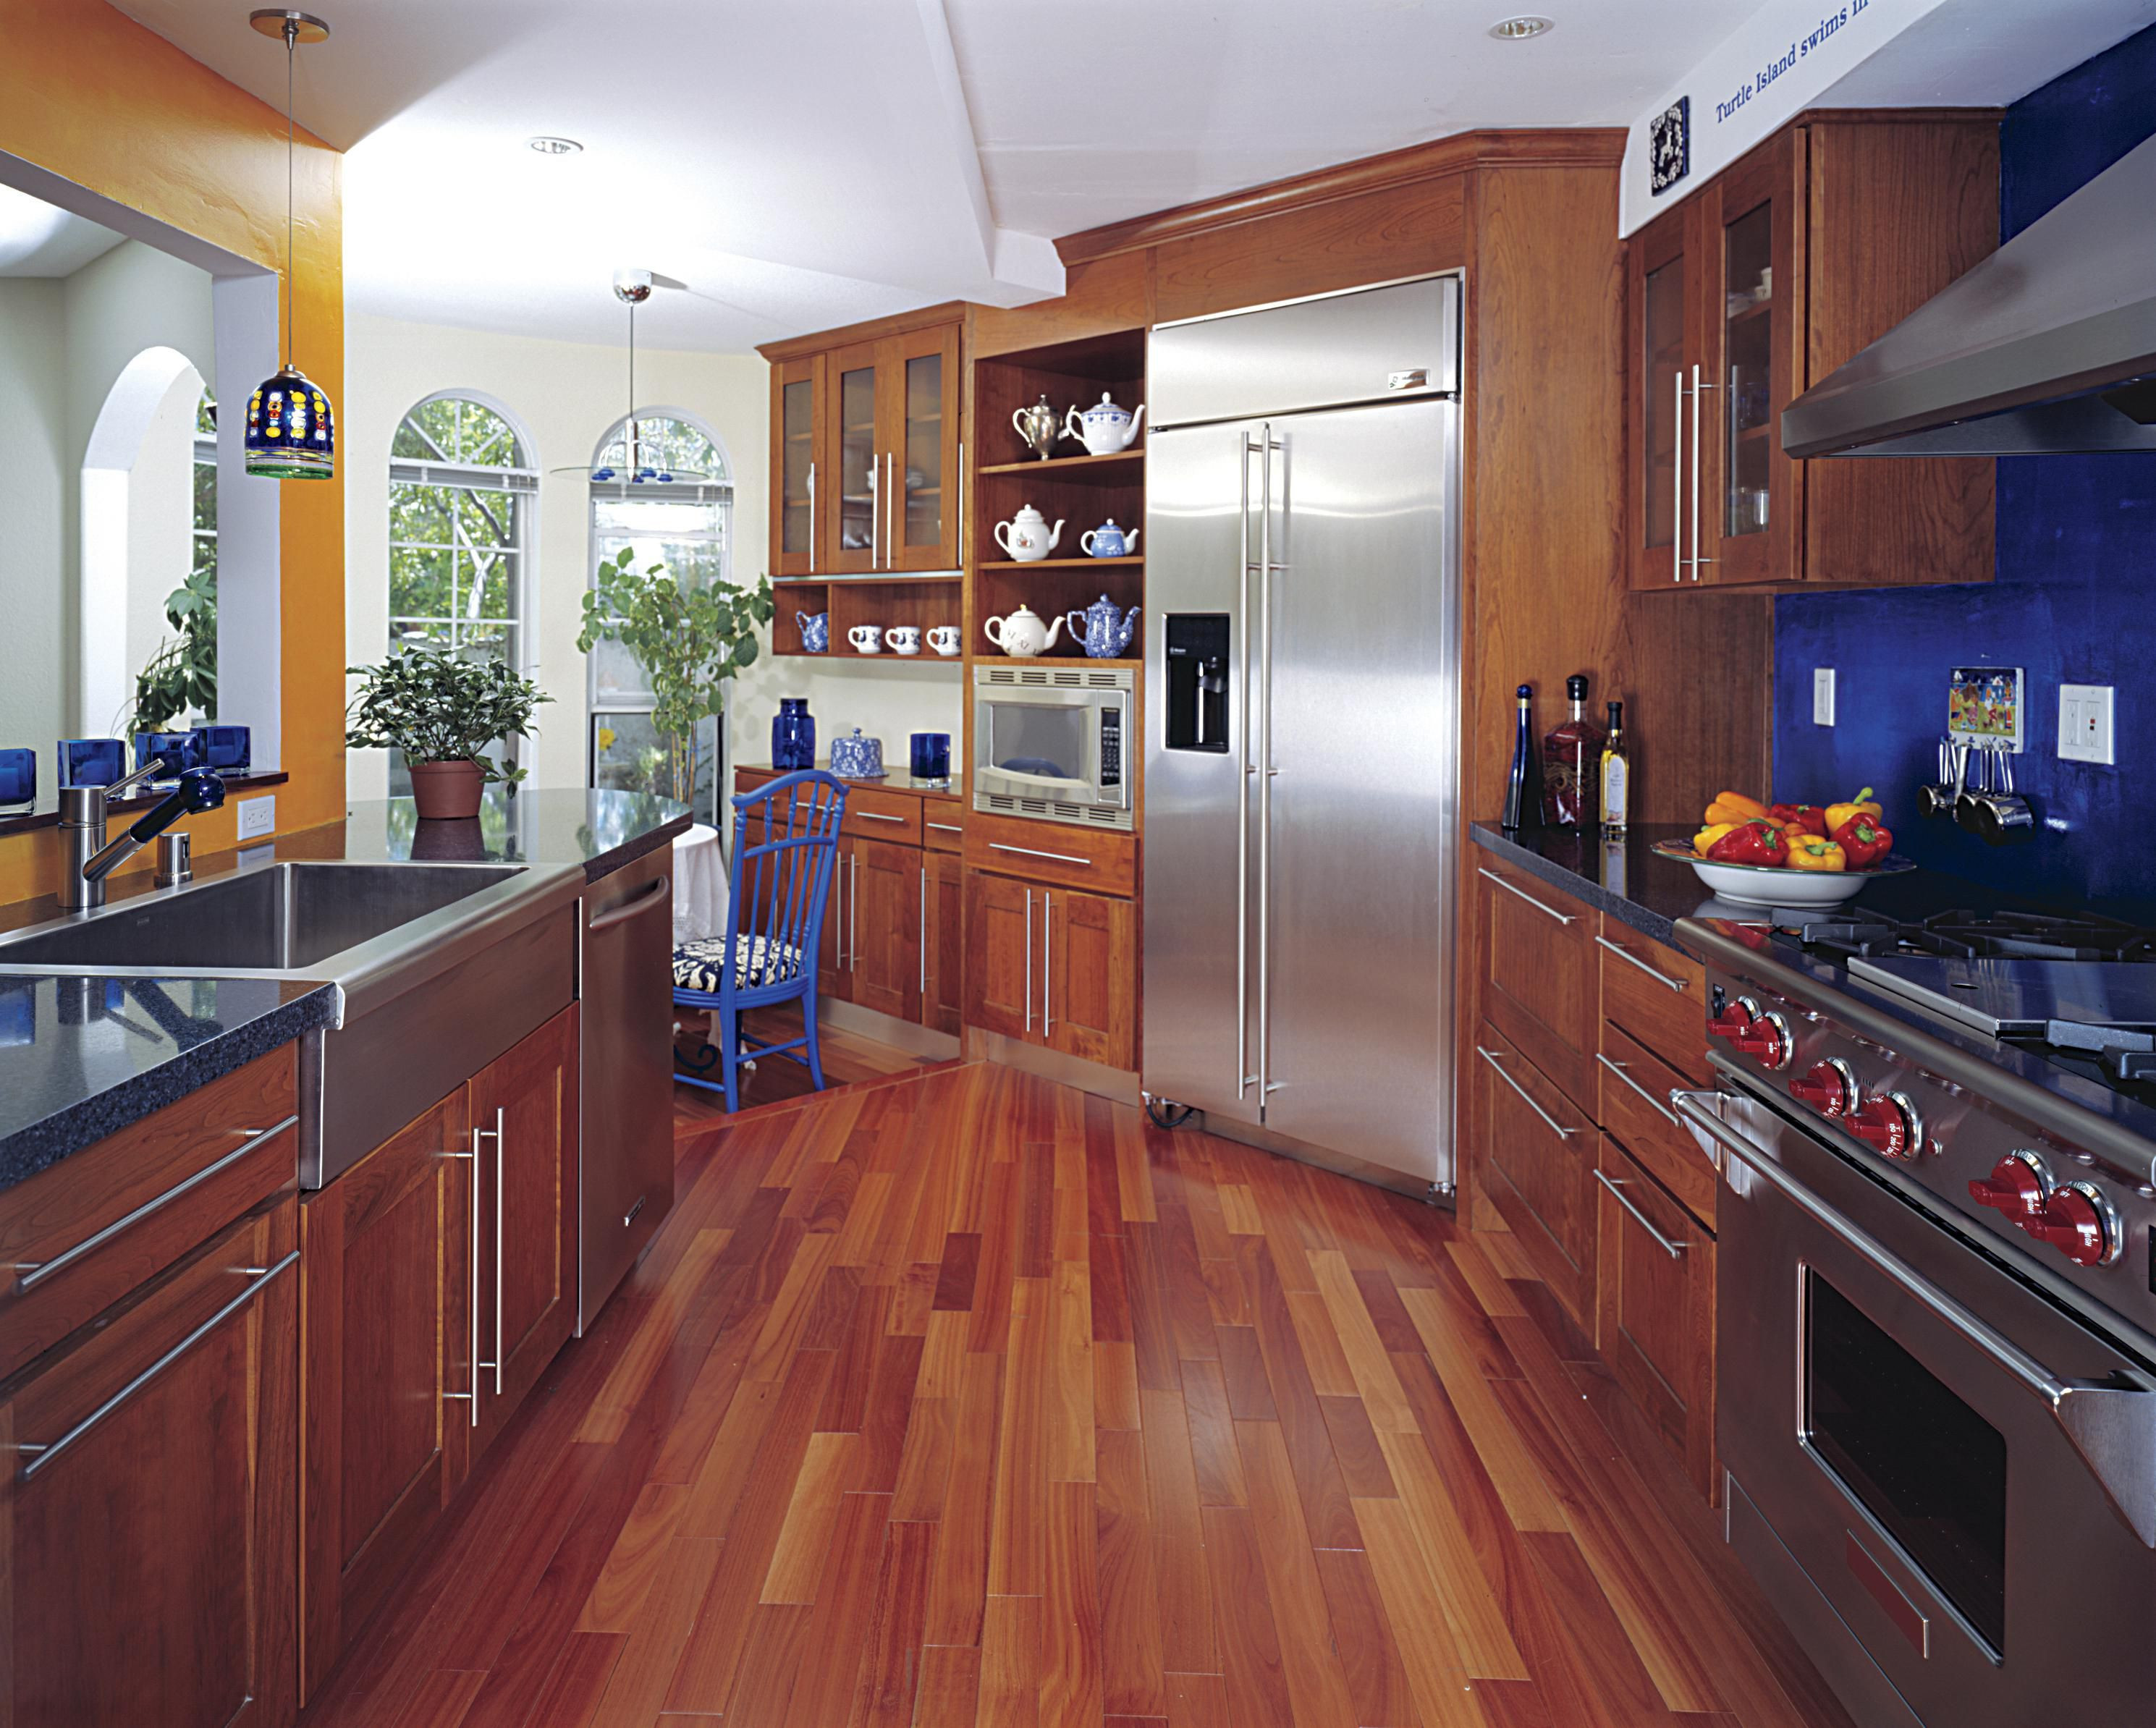 how to install 3 4 hardwood flooring of hardwood floor in a kitchen is this allowed throughout 186828472 56a49f3a5f9b58b7d0d7e142